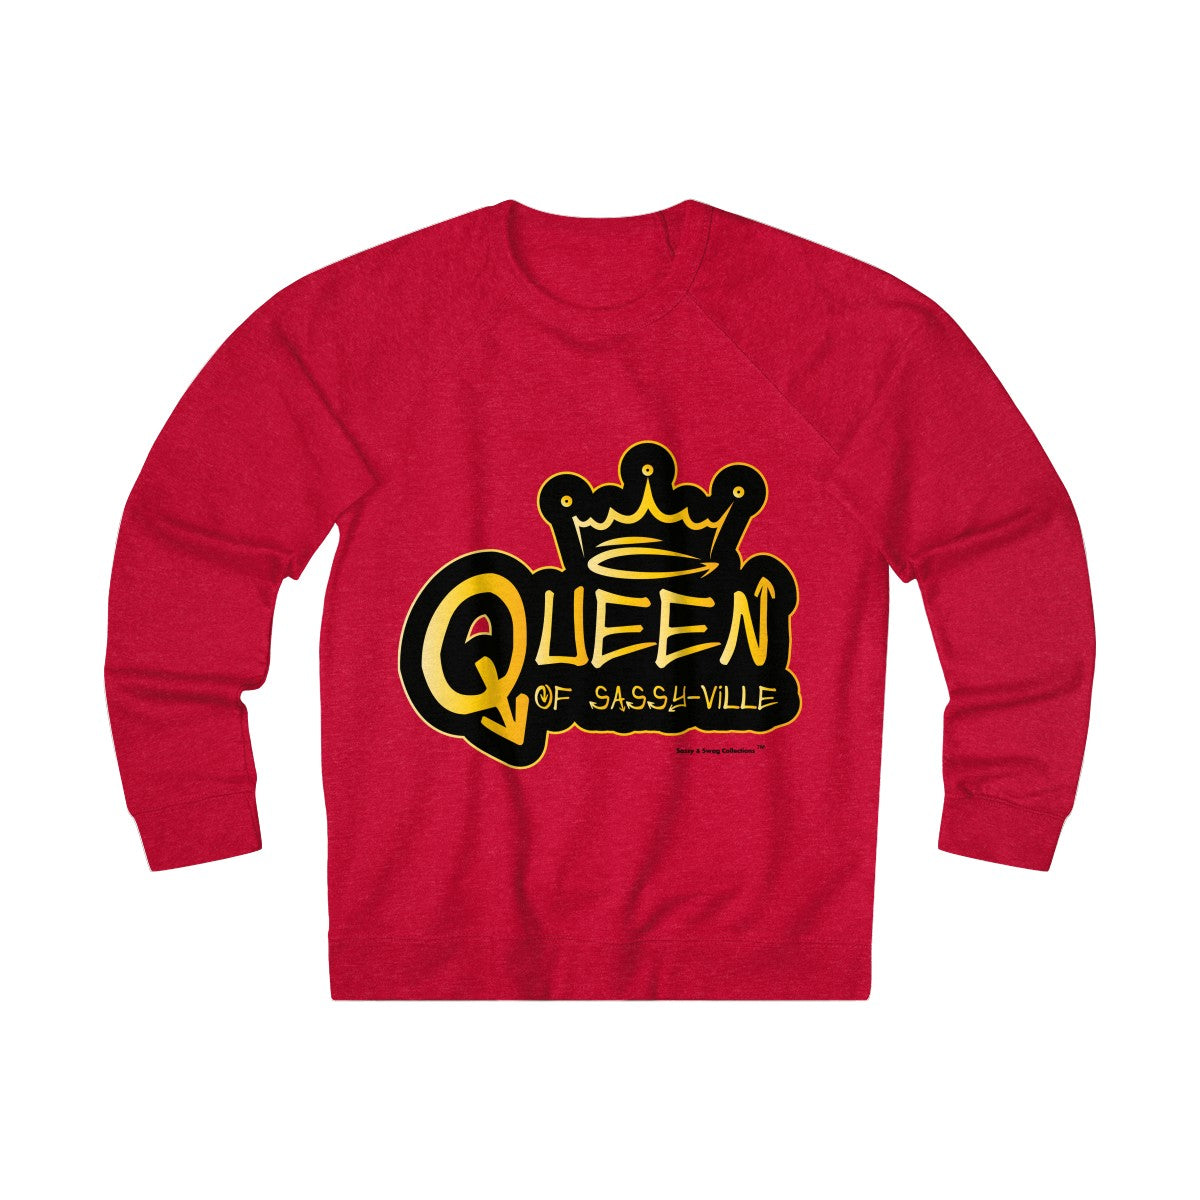 Sassy & Swag Collections - Queen of Sassy-ville Women's French Terry Crew